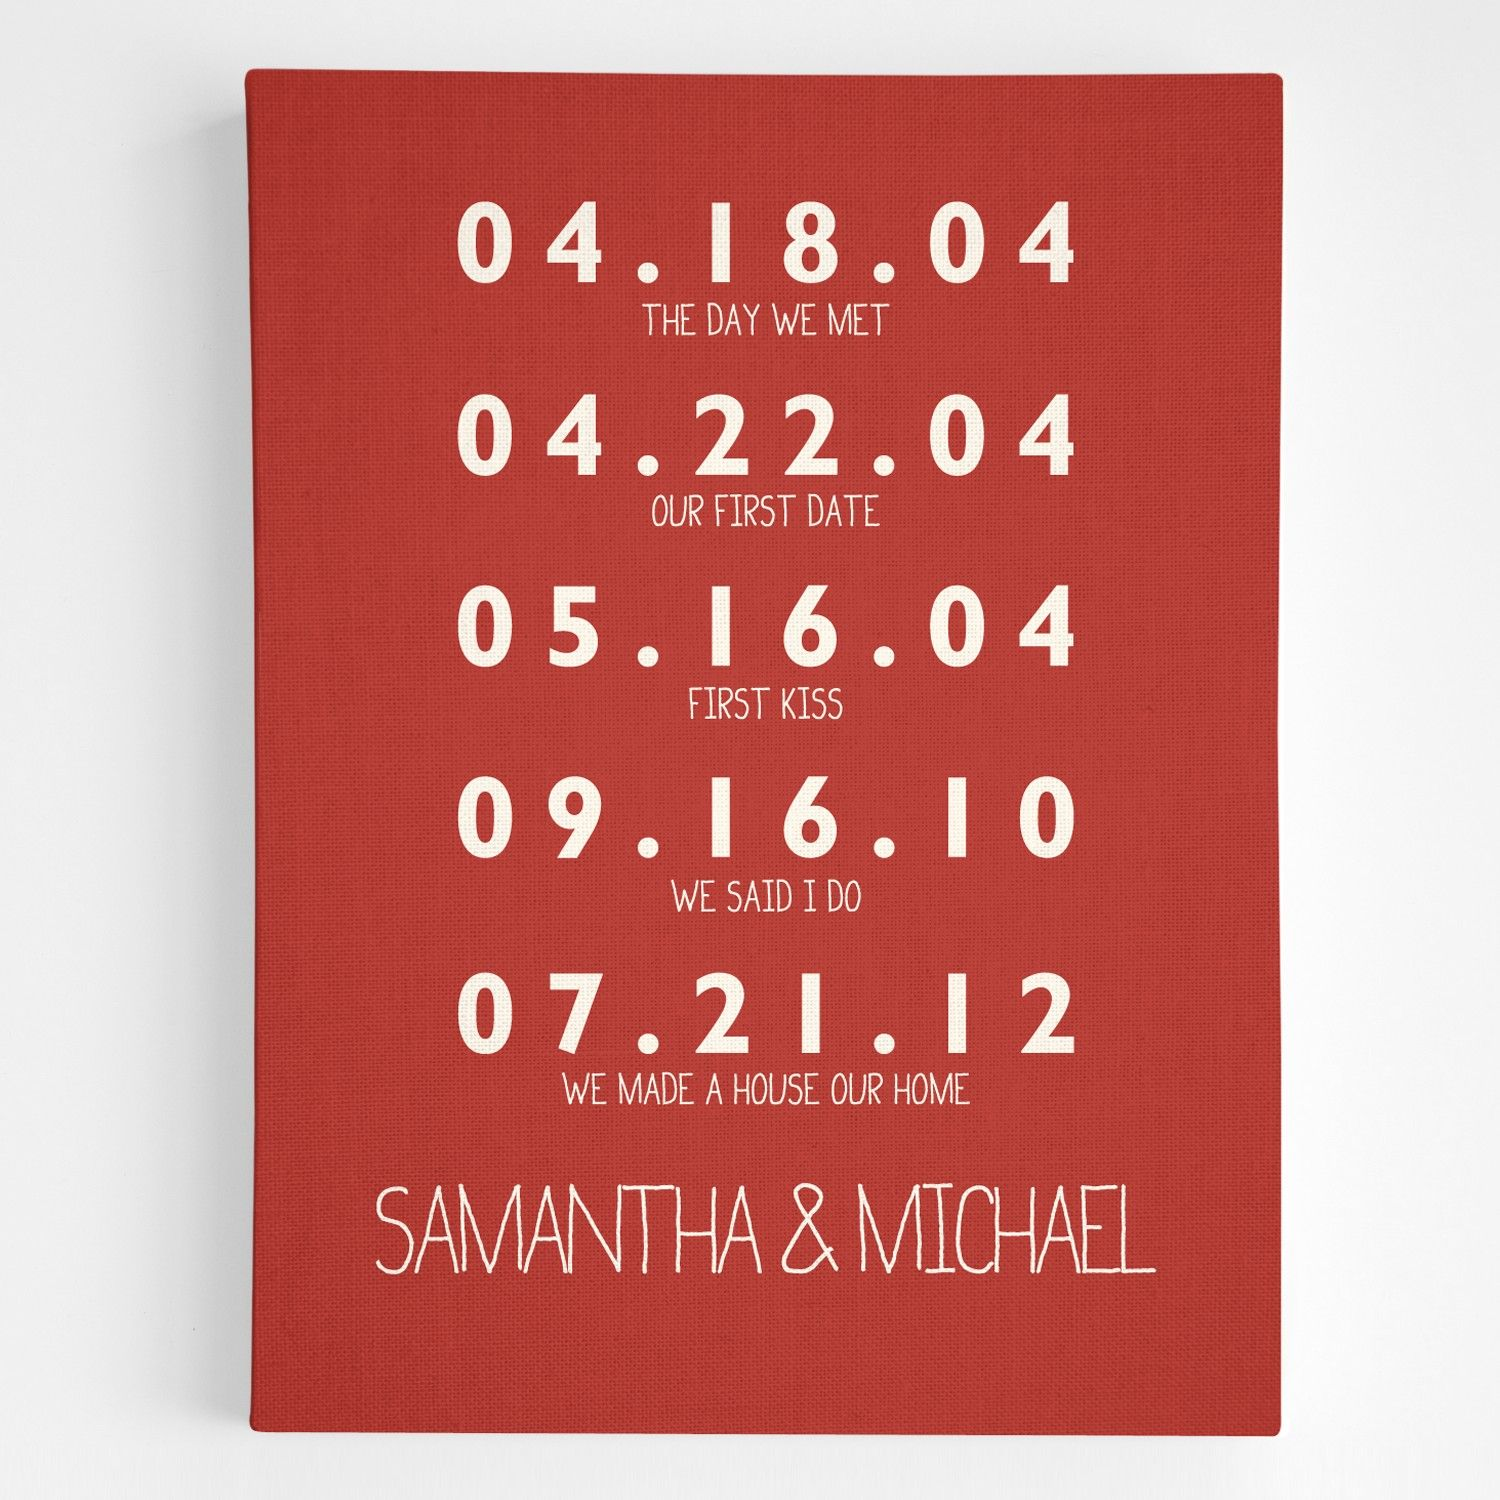 Wedding Anniversary Dates And Gifts: Important Dates Wall Art (personalized) Red Envelope